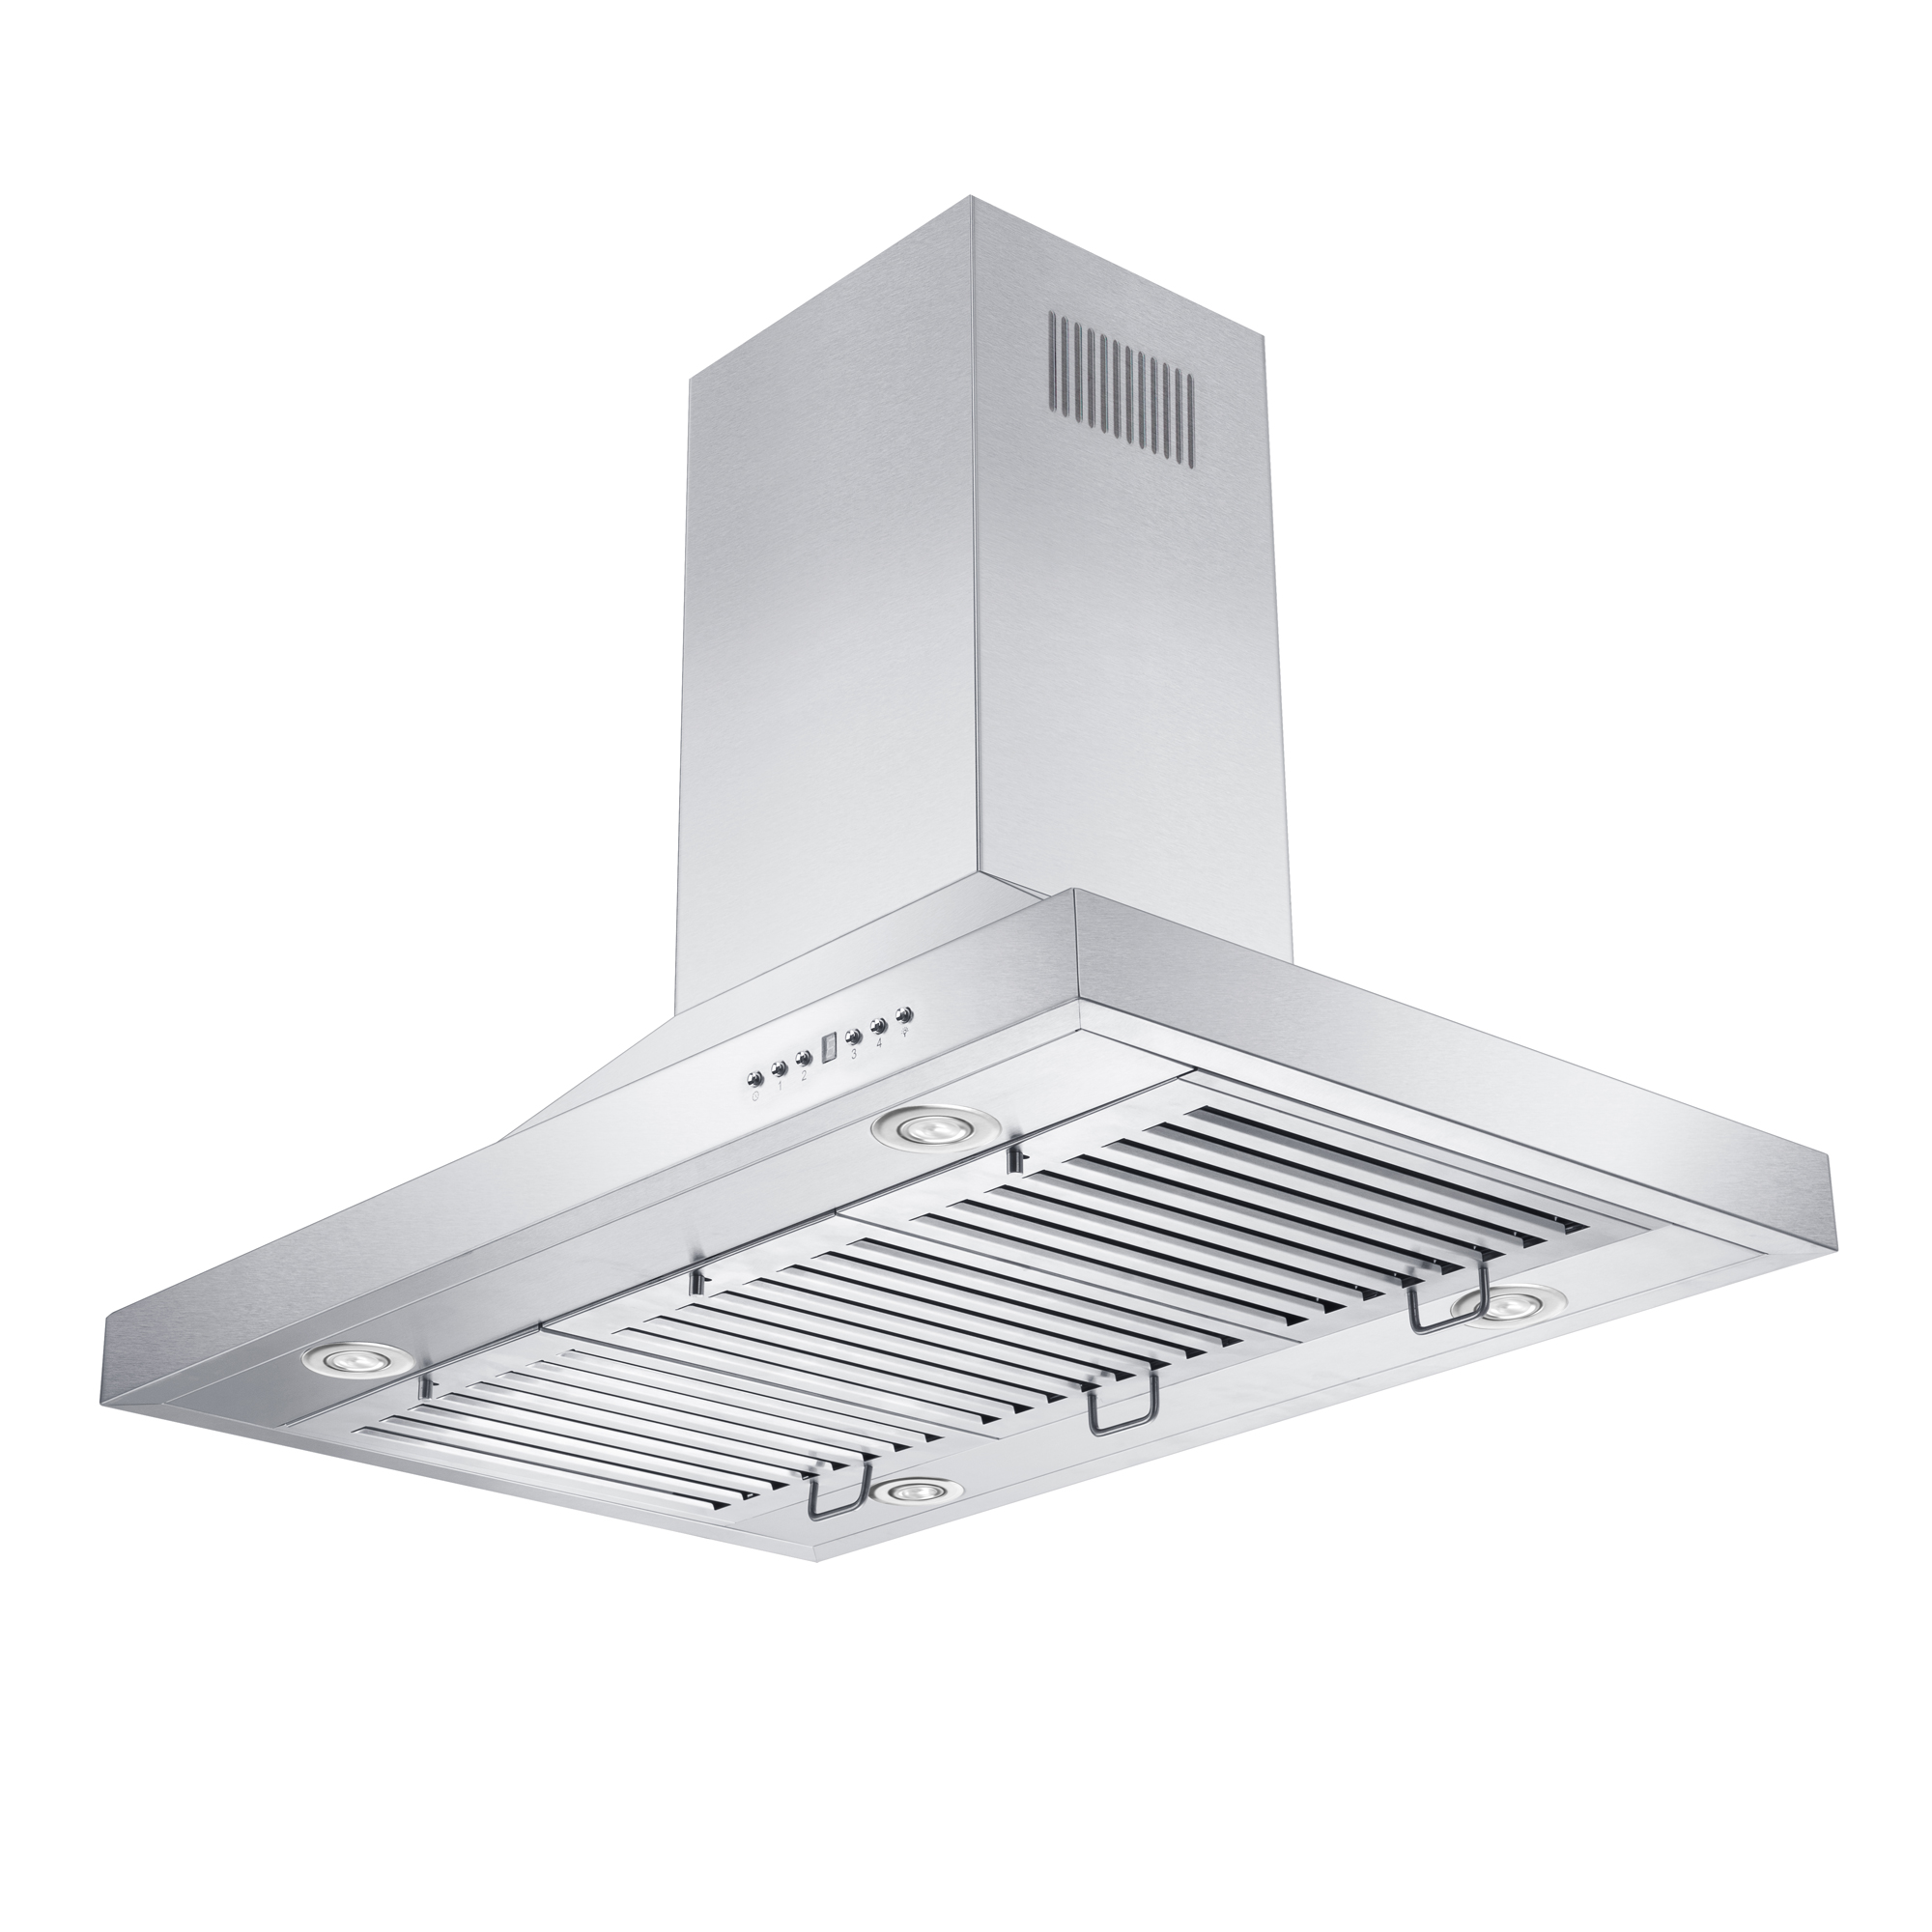 zline-stainless-steel-island-range-hood-GL2i-new-side-bottom.jpg